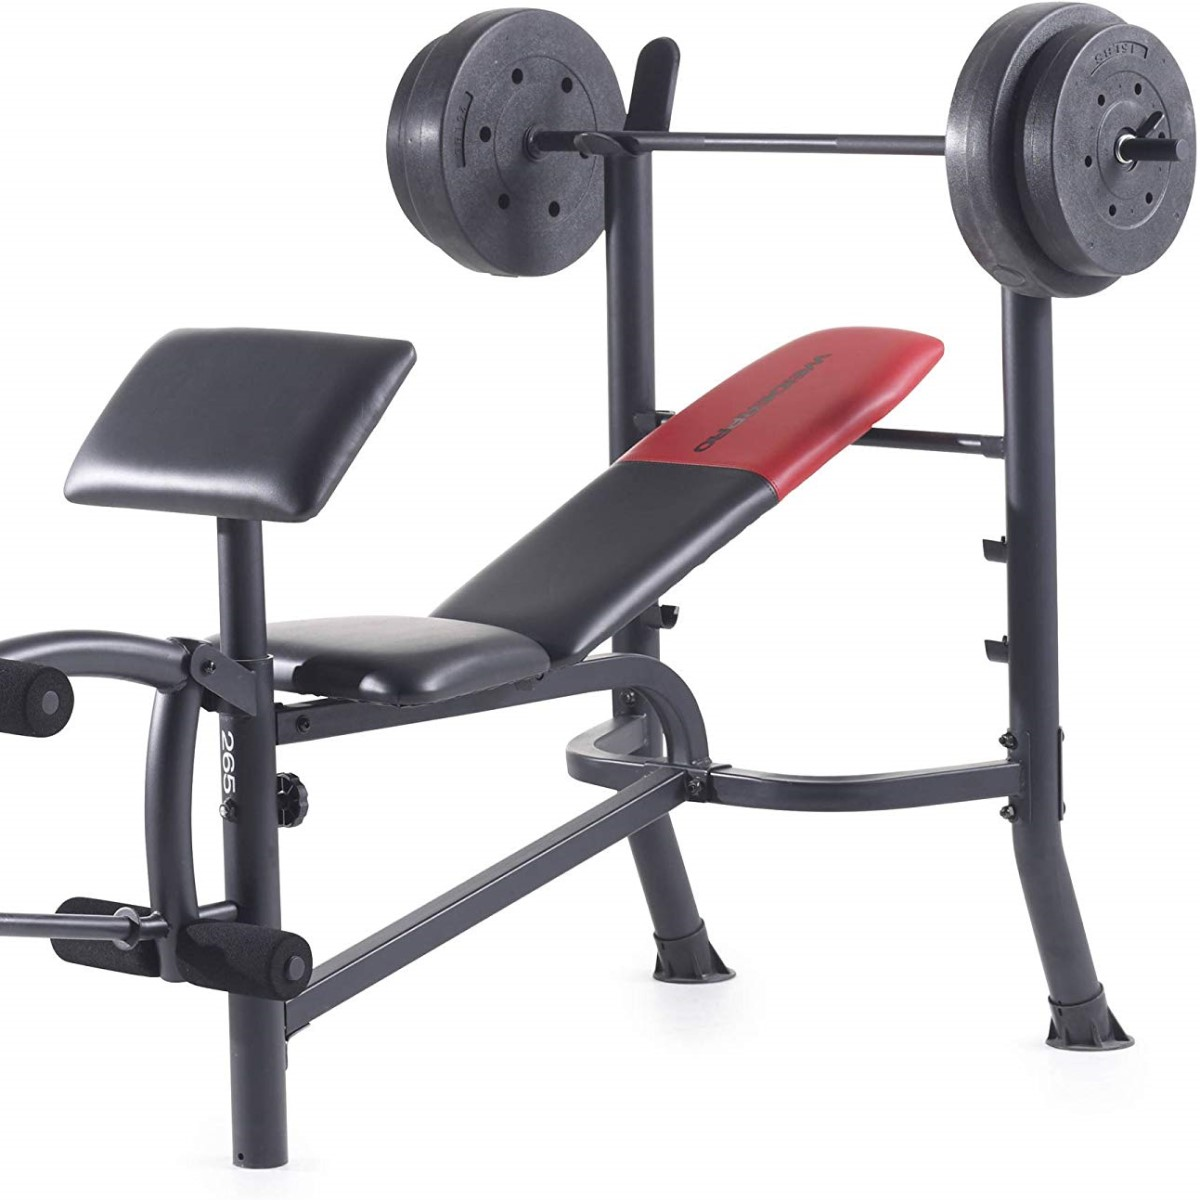 Standard barbell on weight bench